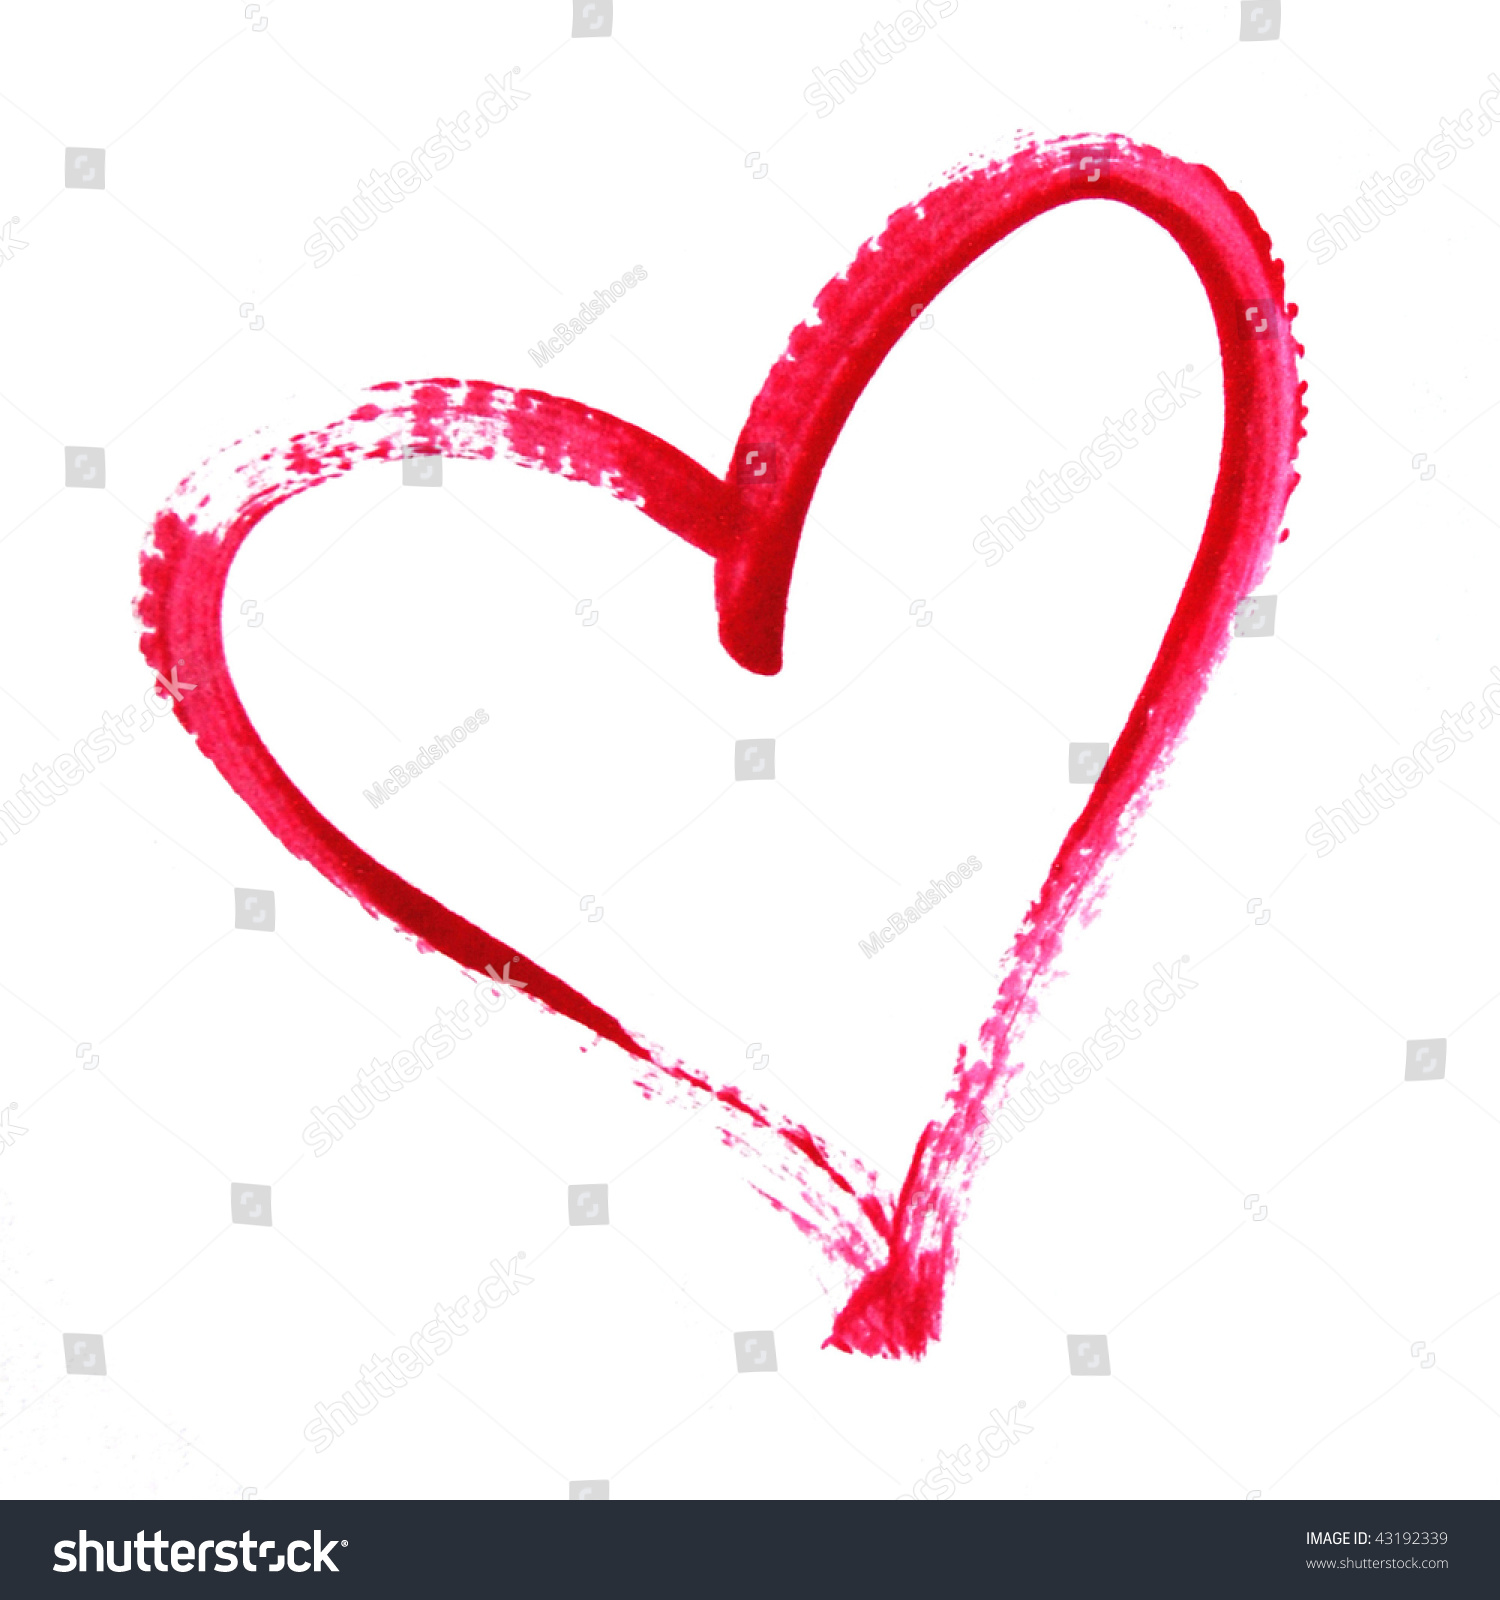 painted heart outline stock photo 43192339 shutterstock spray paint clip art black and white spray paint free clipart